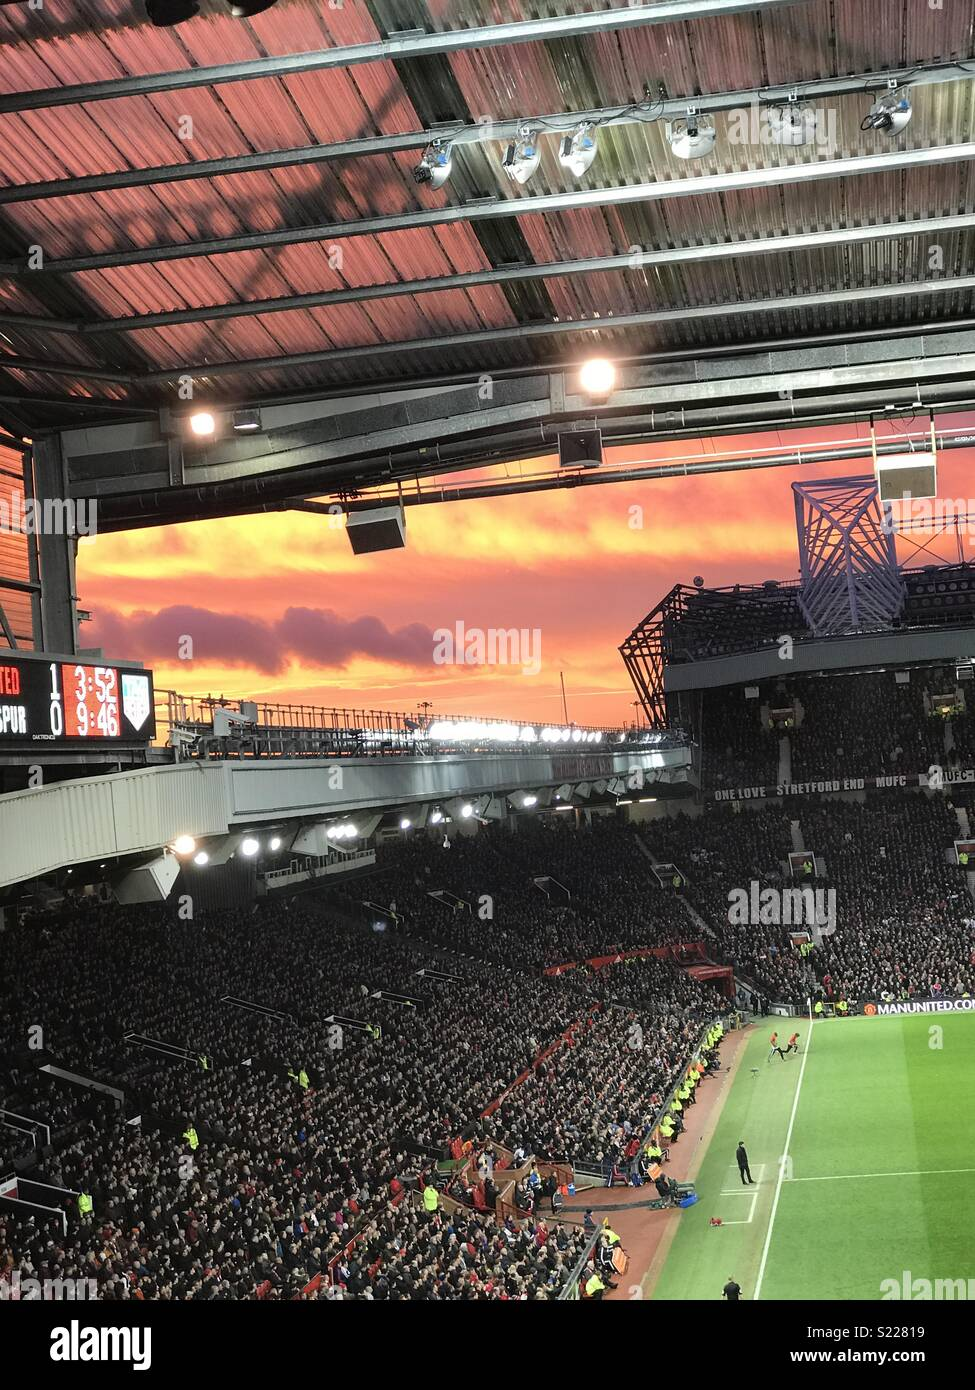 Sunset at old Trafford - Stock Image